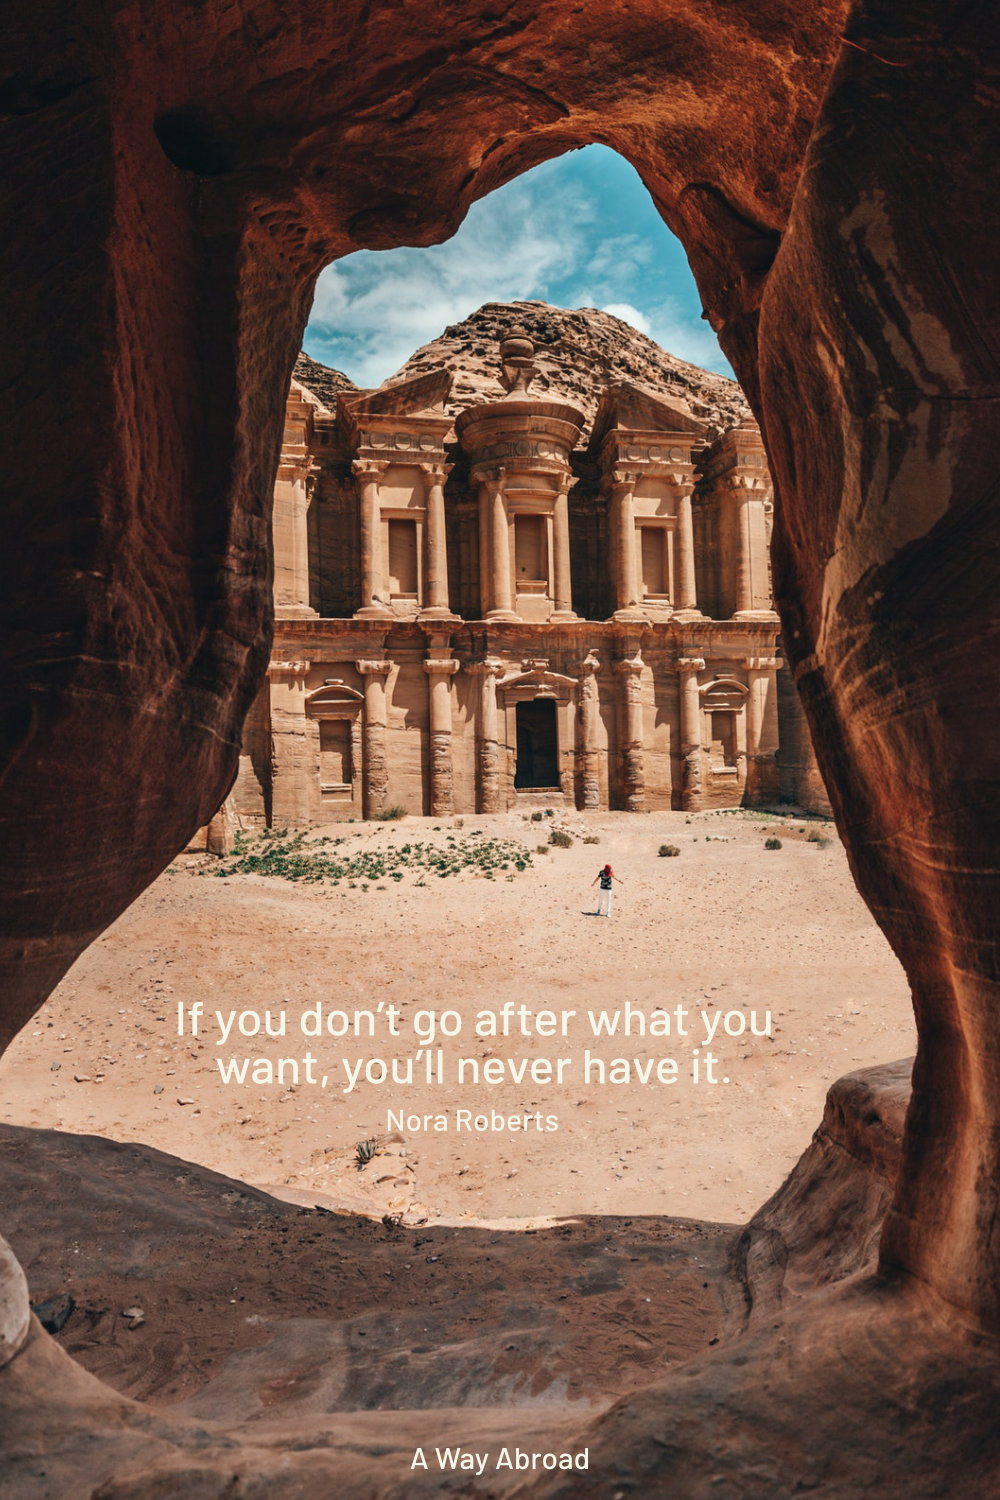 travel quote for motivation to travel more overlay in front of Jordan